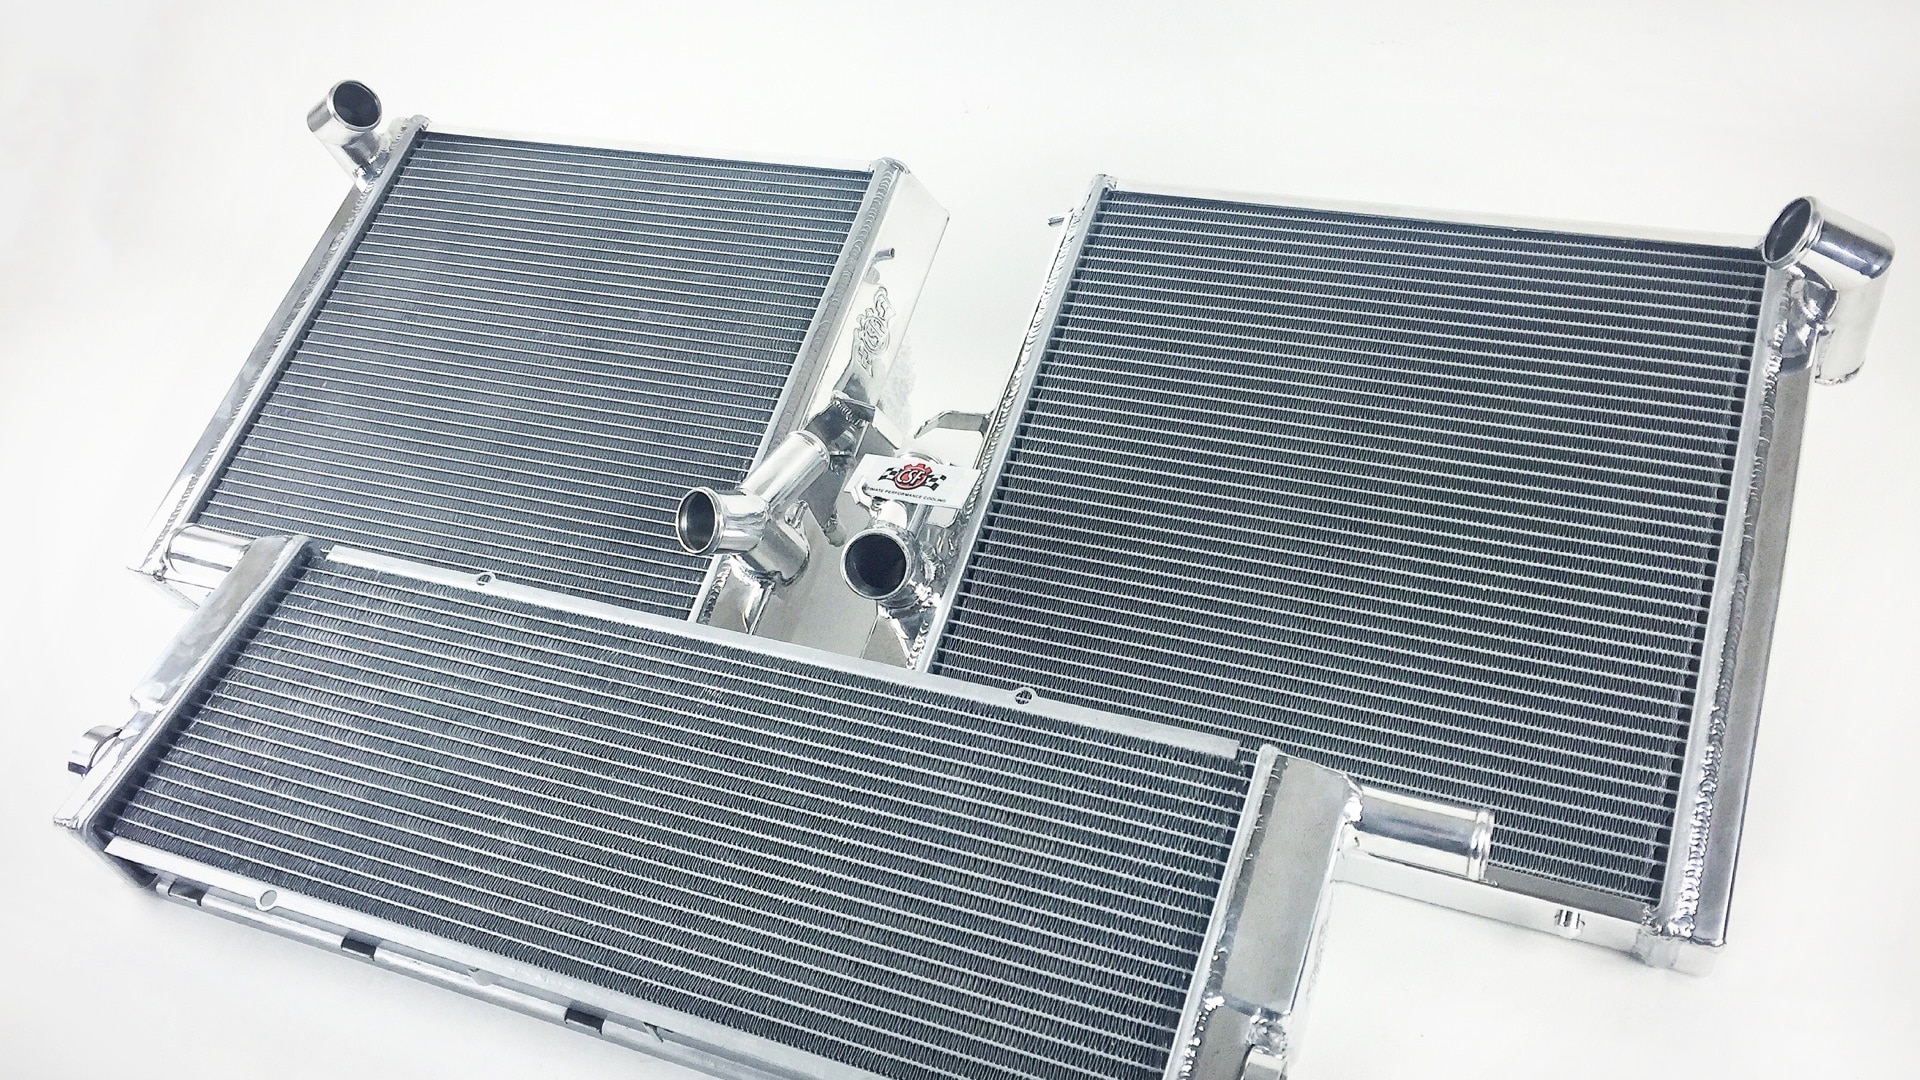 CSF #7069/#7070 Left/Right and #7068 Center Radiator for 991 Turbo/GT3